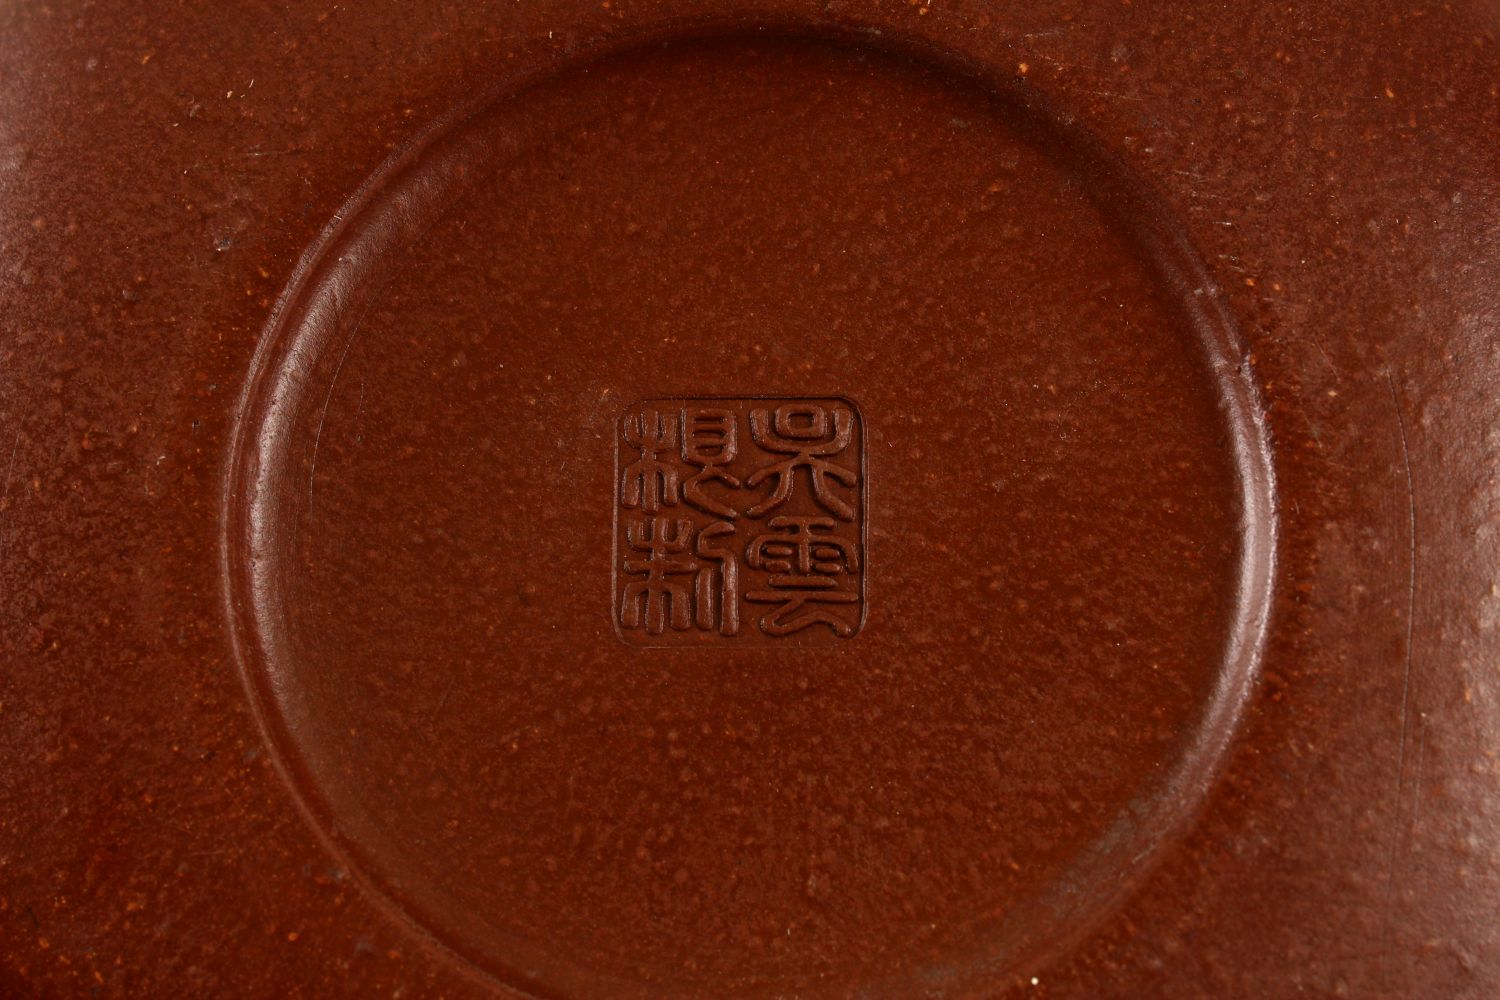 A CHINESE YIXING CLAY TEAPOT, with moulded beast like figures, the underside of the pot and lid with - Image 8 of 8